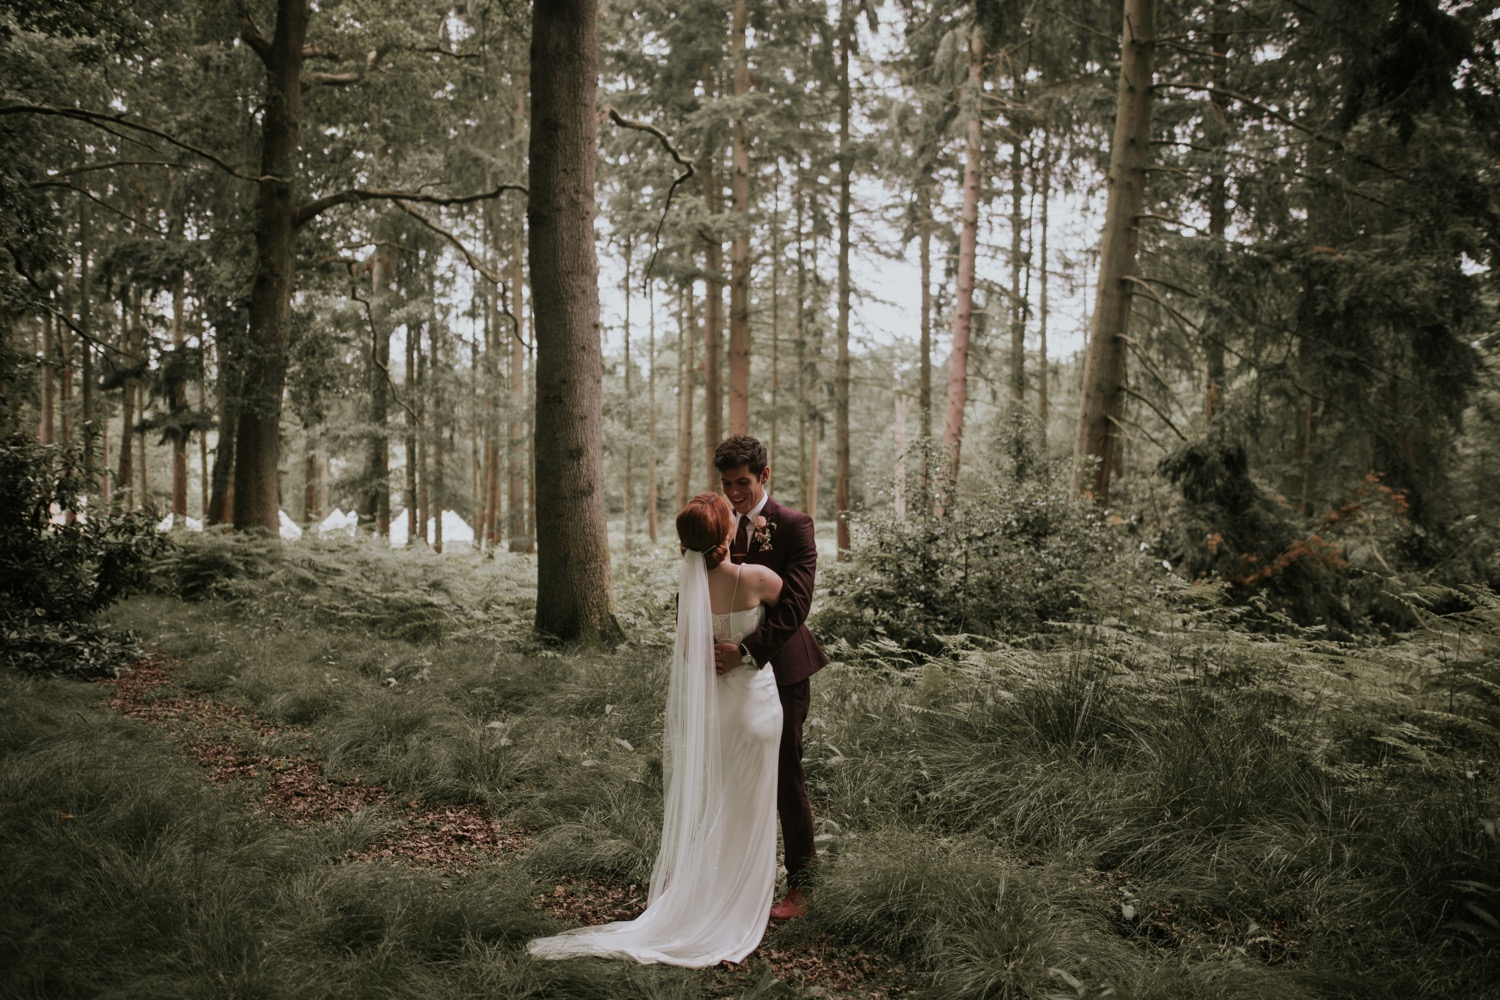 Woodland wedding in Wasing Estate, Berkshire